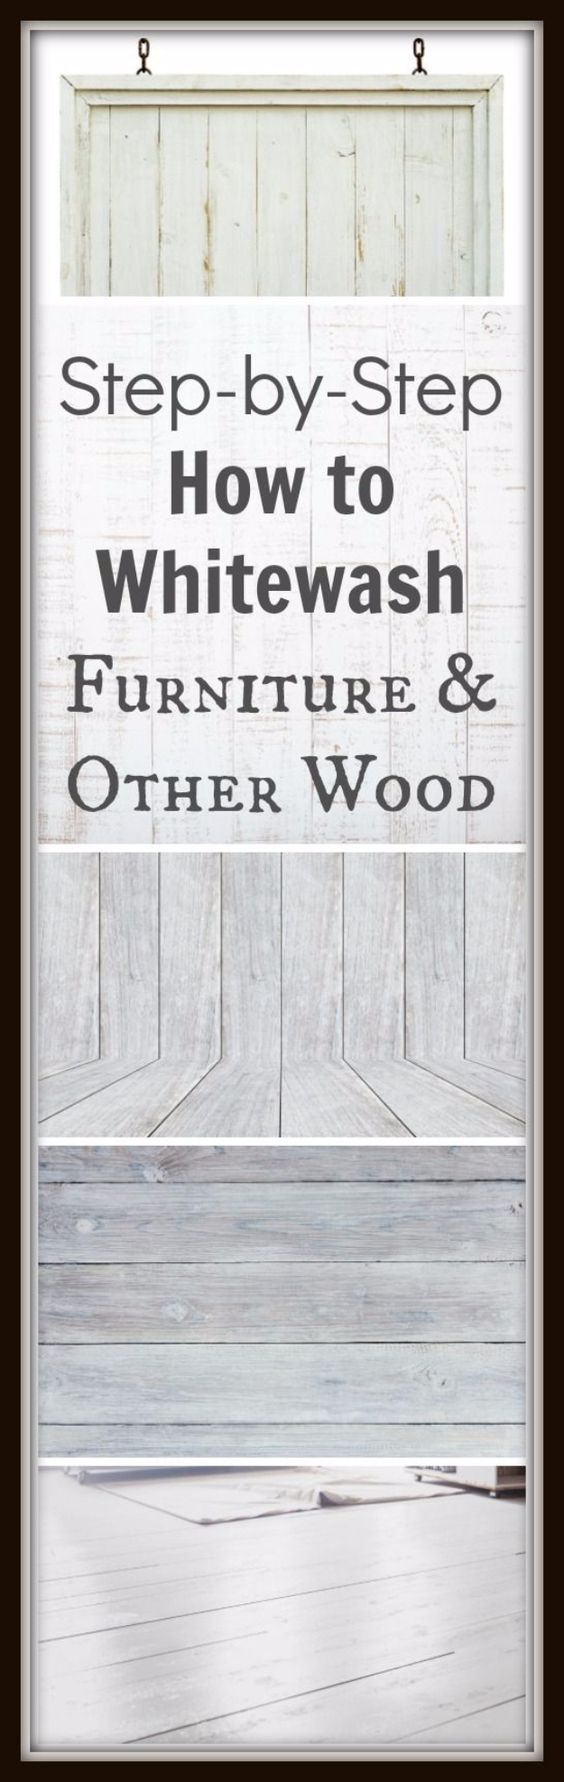 DIY Furniture Refinishing Tips - Whitewashing Furniture - Creative Ways to Redo Furniture With Paint and DIY Project Techniques - Awesome Dressers, Kitchen Cabinets, Tables and Beds - Rustic and Distressed Looks Made Easy With Step by Step Tutorials - How To Make Creative Home Decor On A Budget http://diyjoy.com/furniture-refinishing-tips